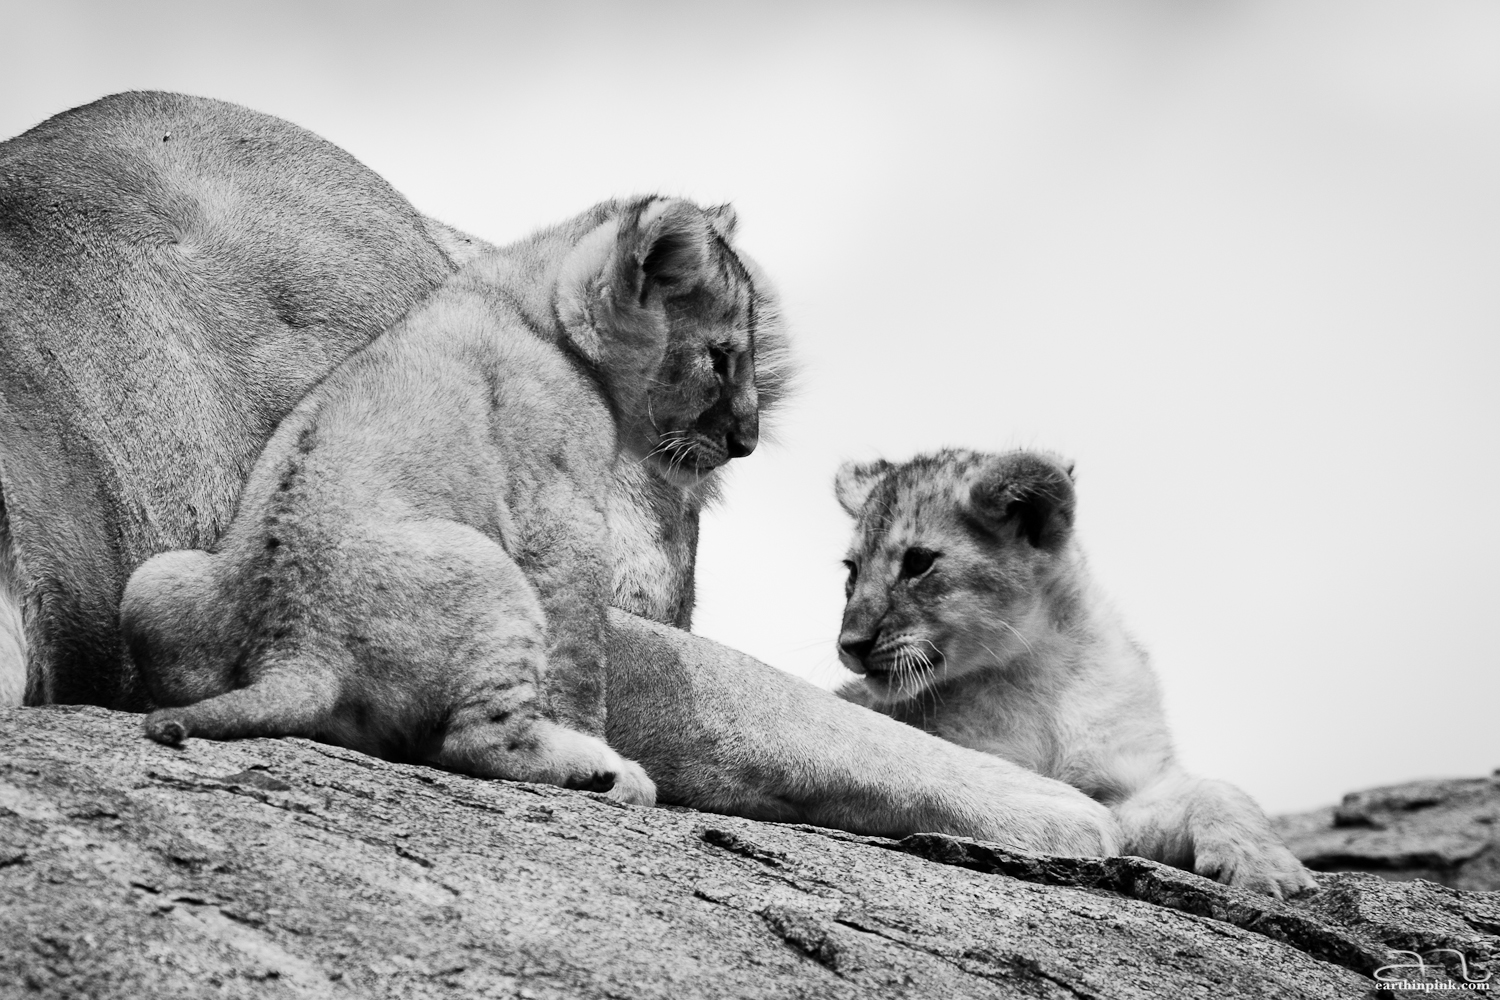 Lion cubs on a tall rock, also known as a kopje, in the Serengeti